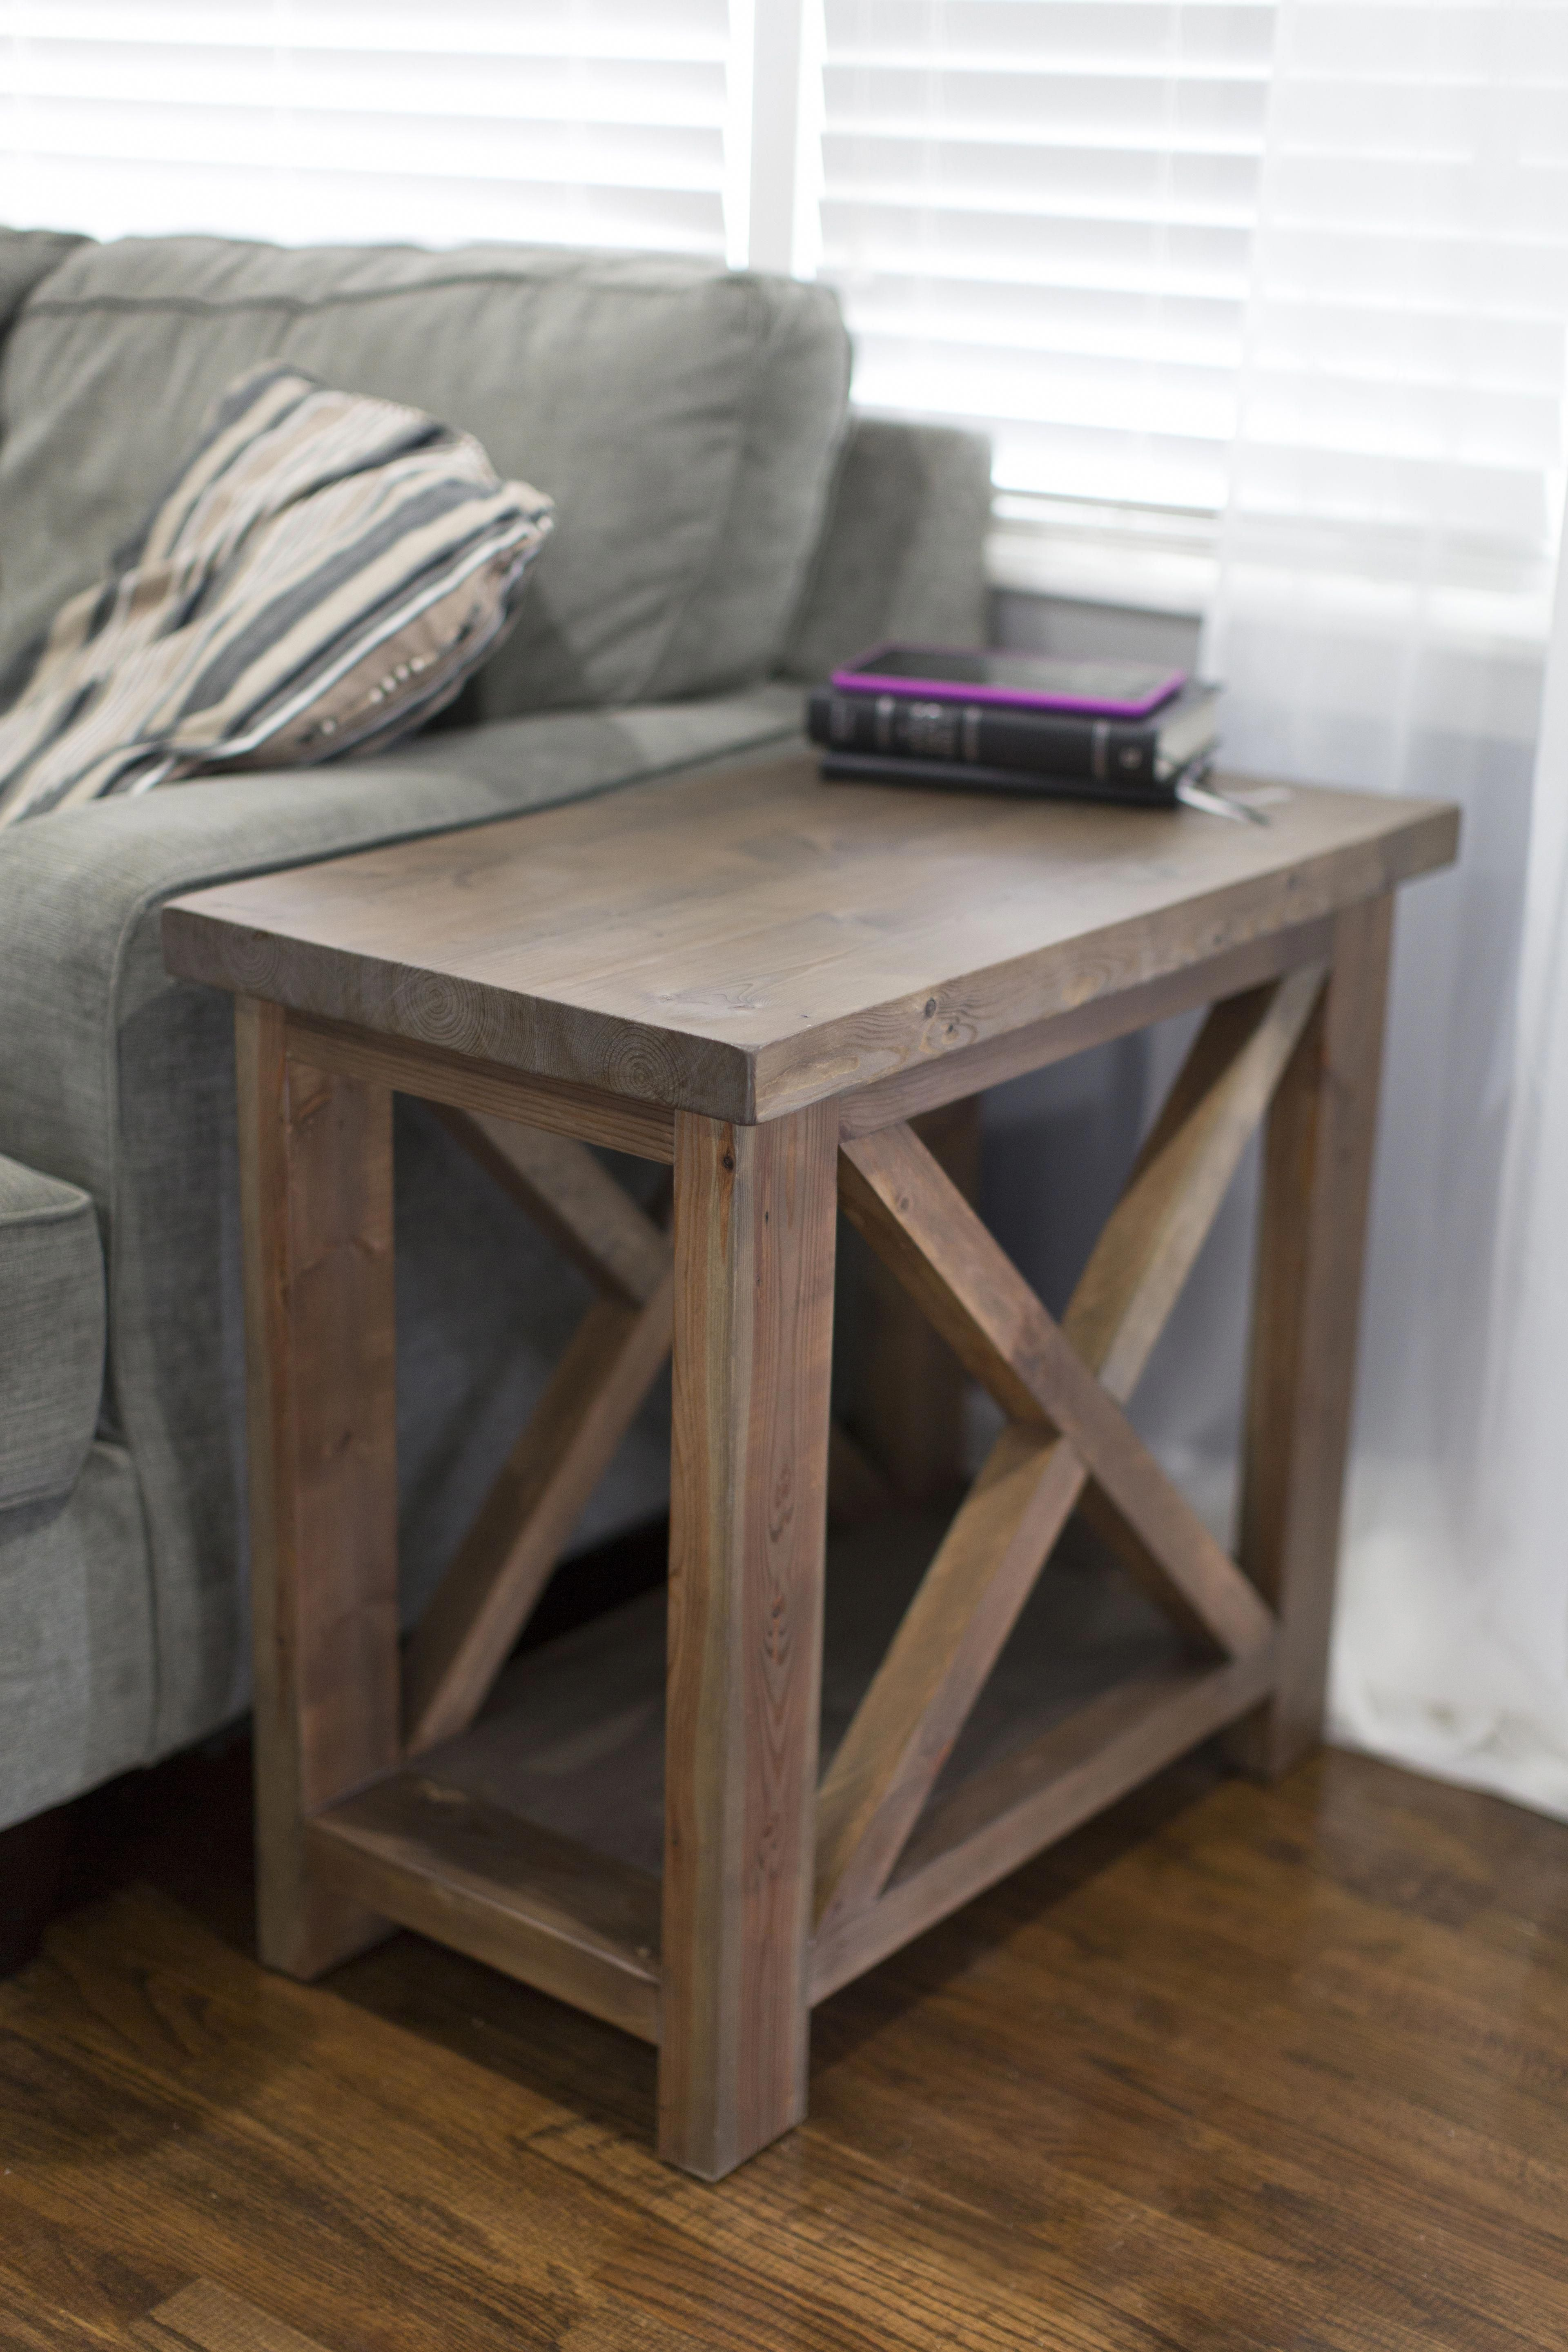 Rustic X Style Side Table With A Thick Top And A Bottom Shelf For Extra Storage Diyresinwoodtables Rustic End Tables Rustic Side Table Side Table Wood [ 5760 x 3840 Pixel ]